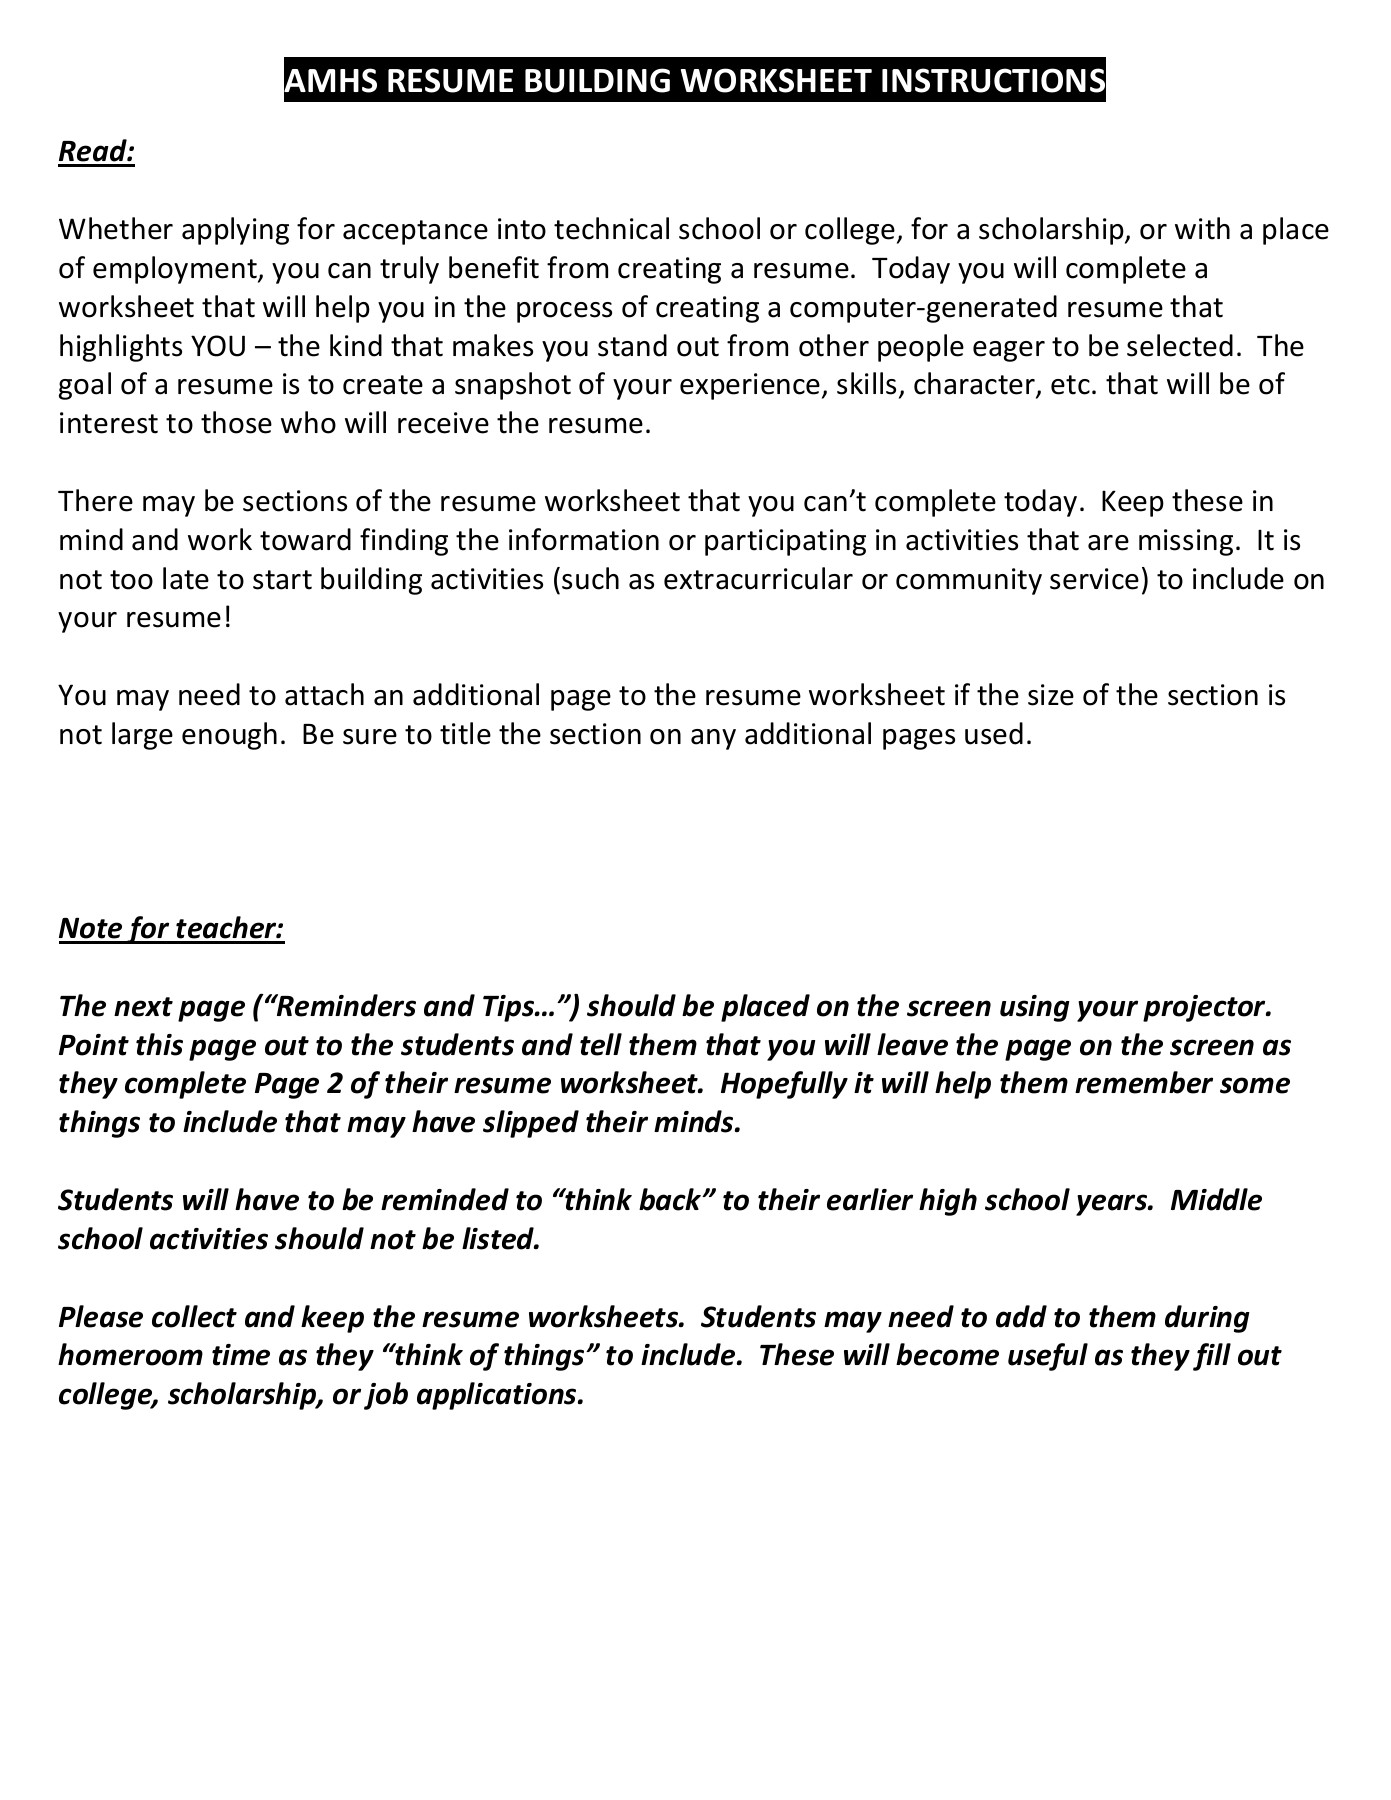 Resume Building Worksheet Pages 1 4 Text Version Anyflip